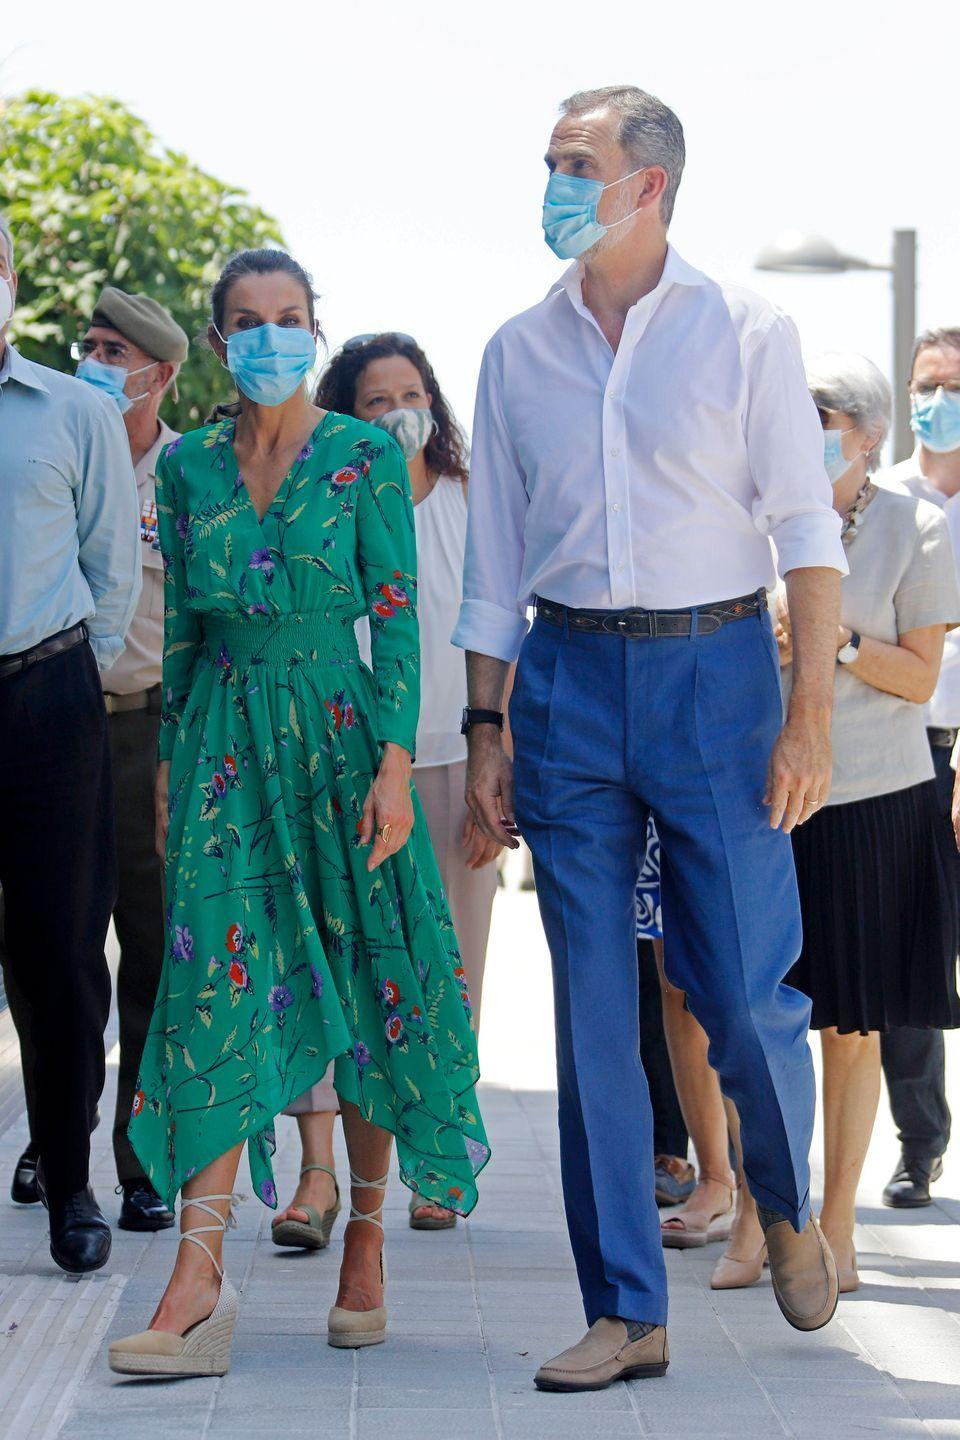 <p>King Felipe and Queen Letizia walked the promenade in Palma de Mallorca, Spain. The pair is on a royal tour of several Spanish Autonomous Communities, like Palma de Mallorca, to support and encourage economic, social, and cultural activity after the coronavirus outbreak. The Queen was a vision in a green floral dress from French label, Maje. She paired the look with tan espadrille wedges and a blue protective face mask. </p>